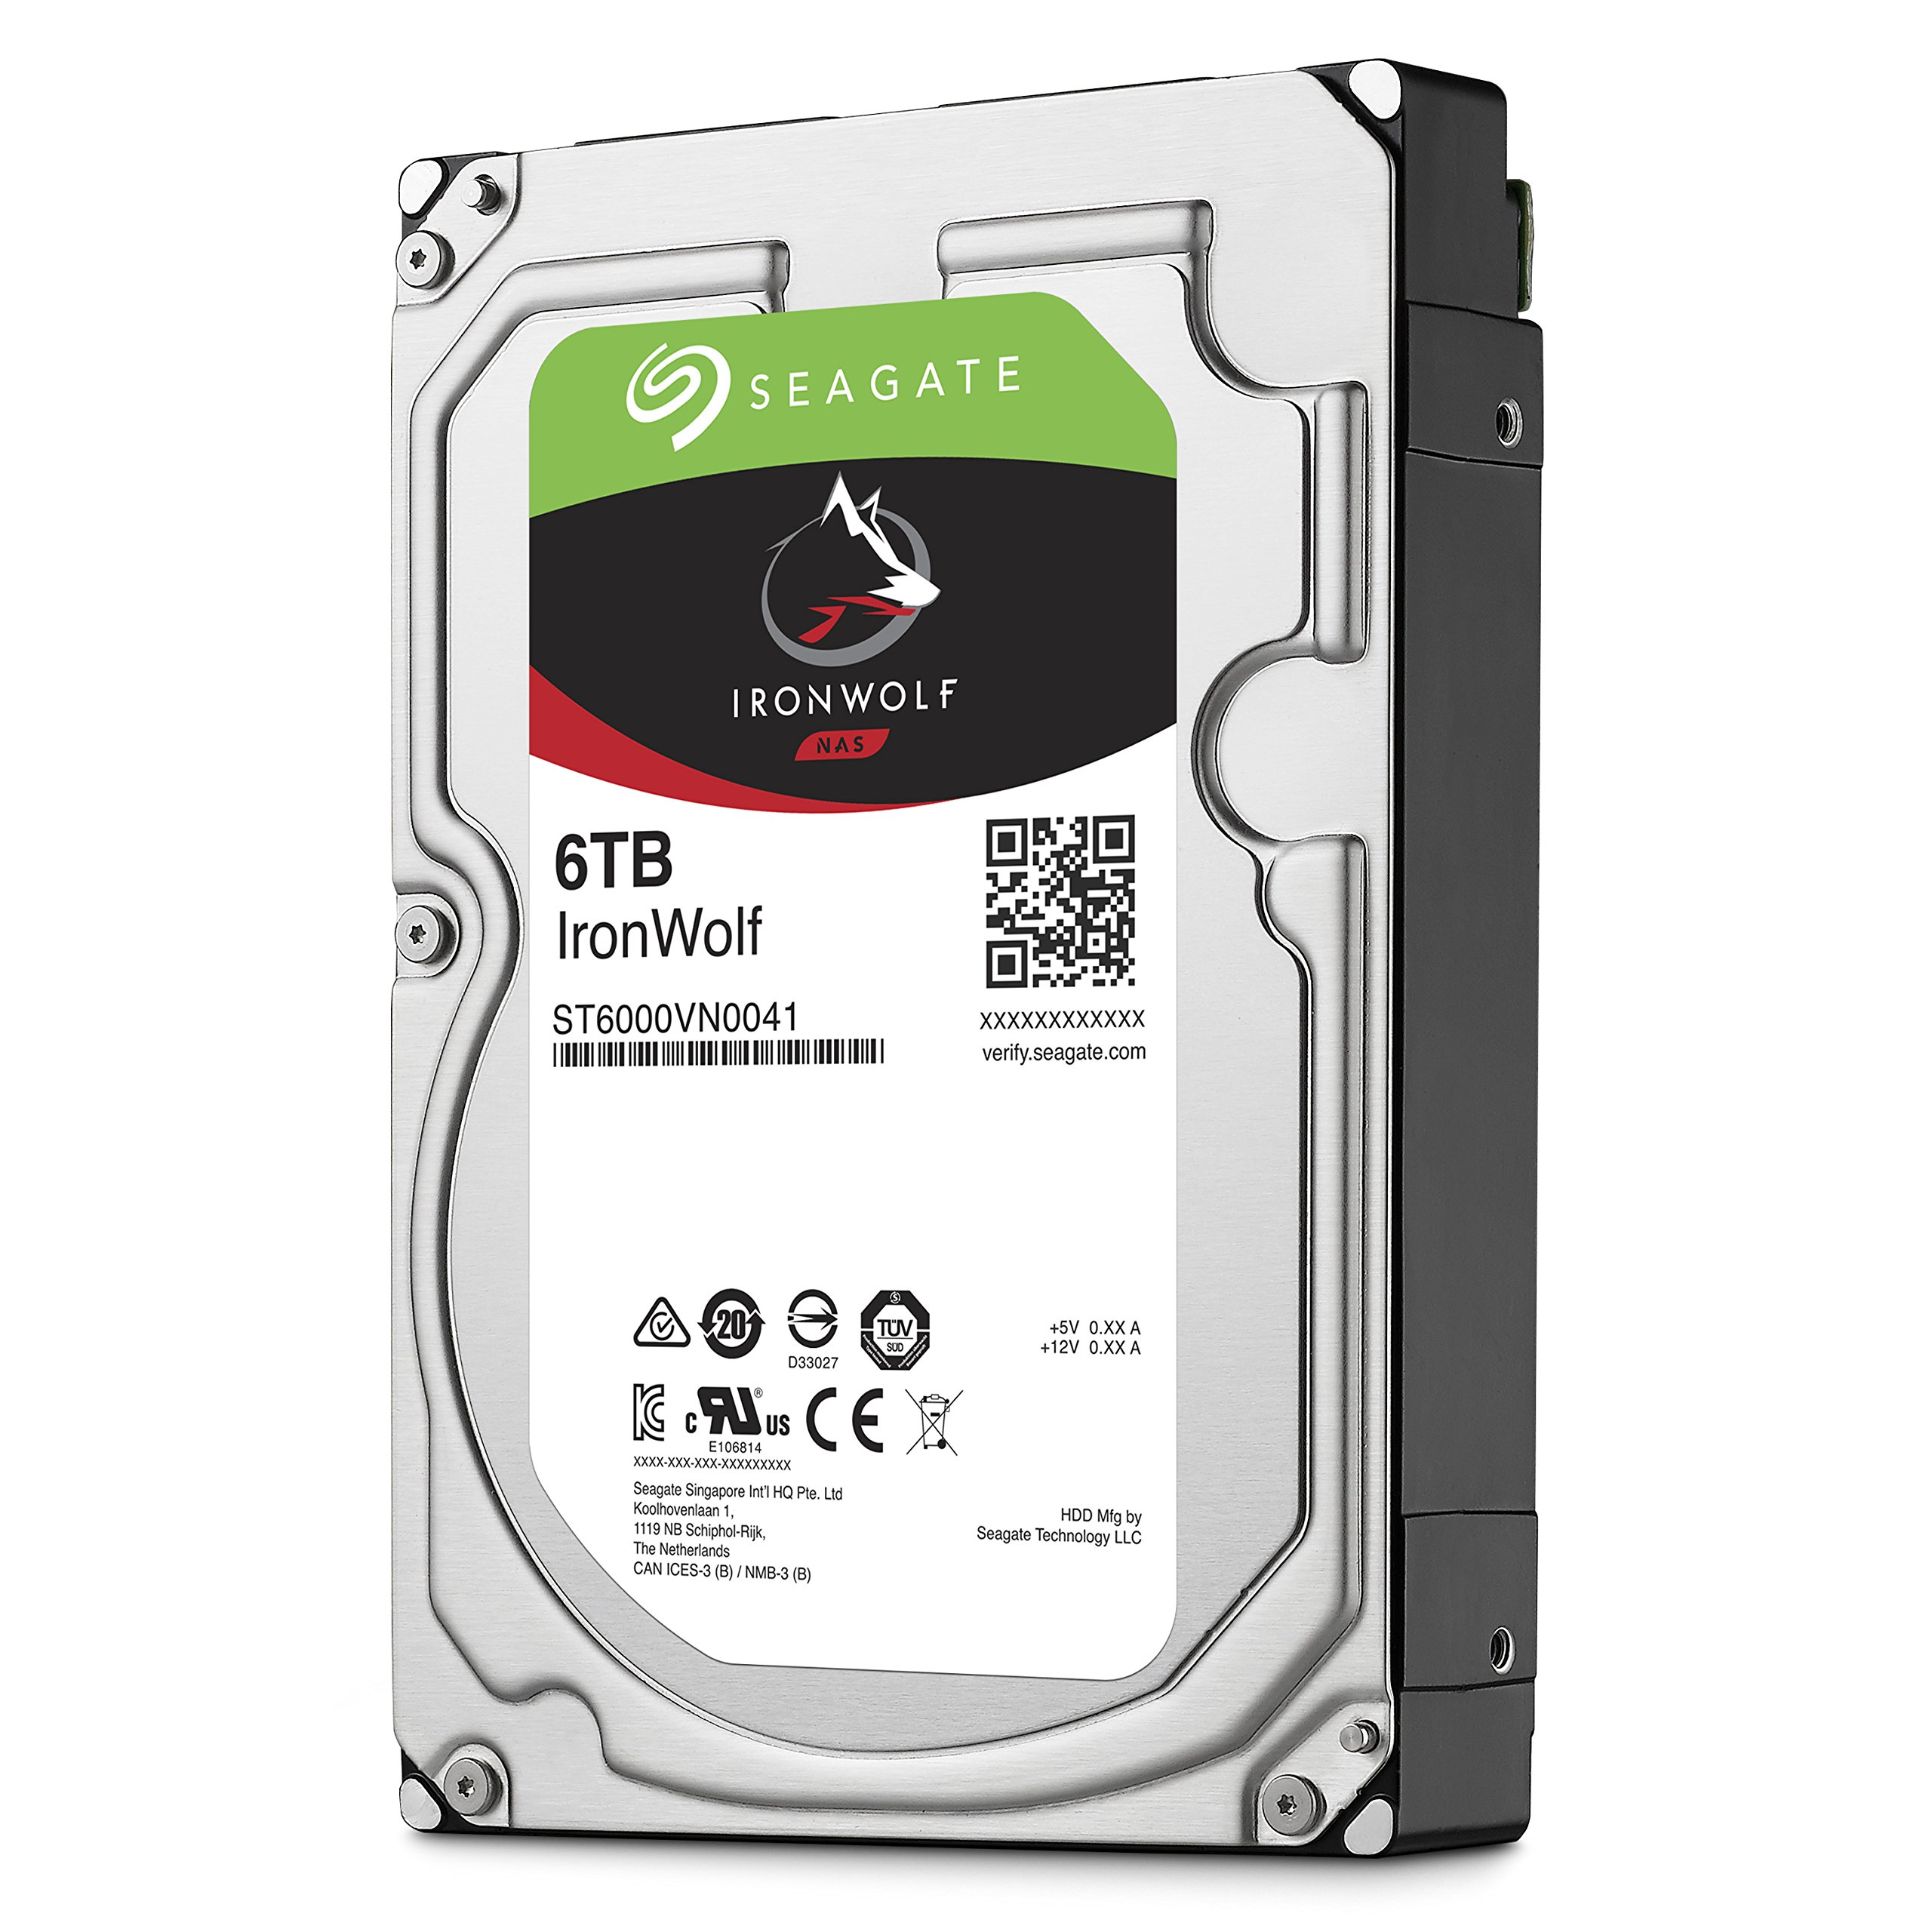 Seagate 6TB IronWolf NAS SATA 6Gb/s NCQ 128MB Cache 3.5-Inch Internal Hard Drive (ST6000VN0041) by Seagate (Image #4)